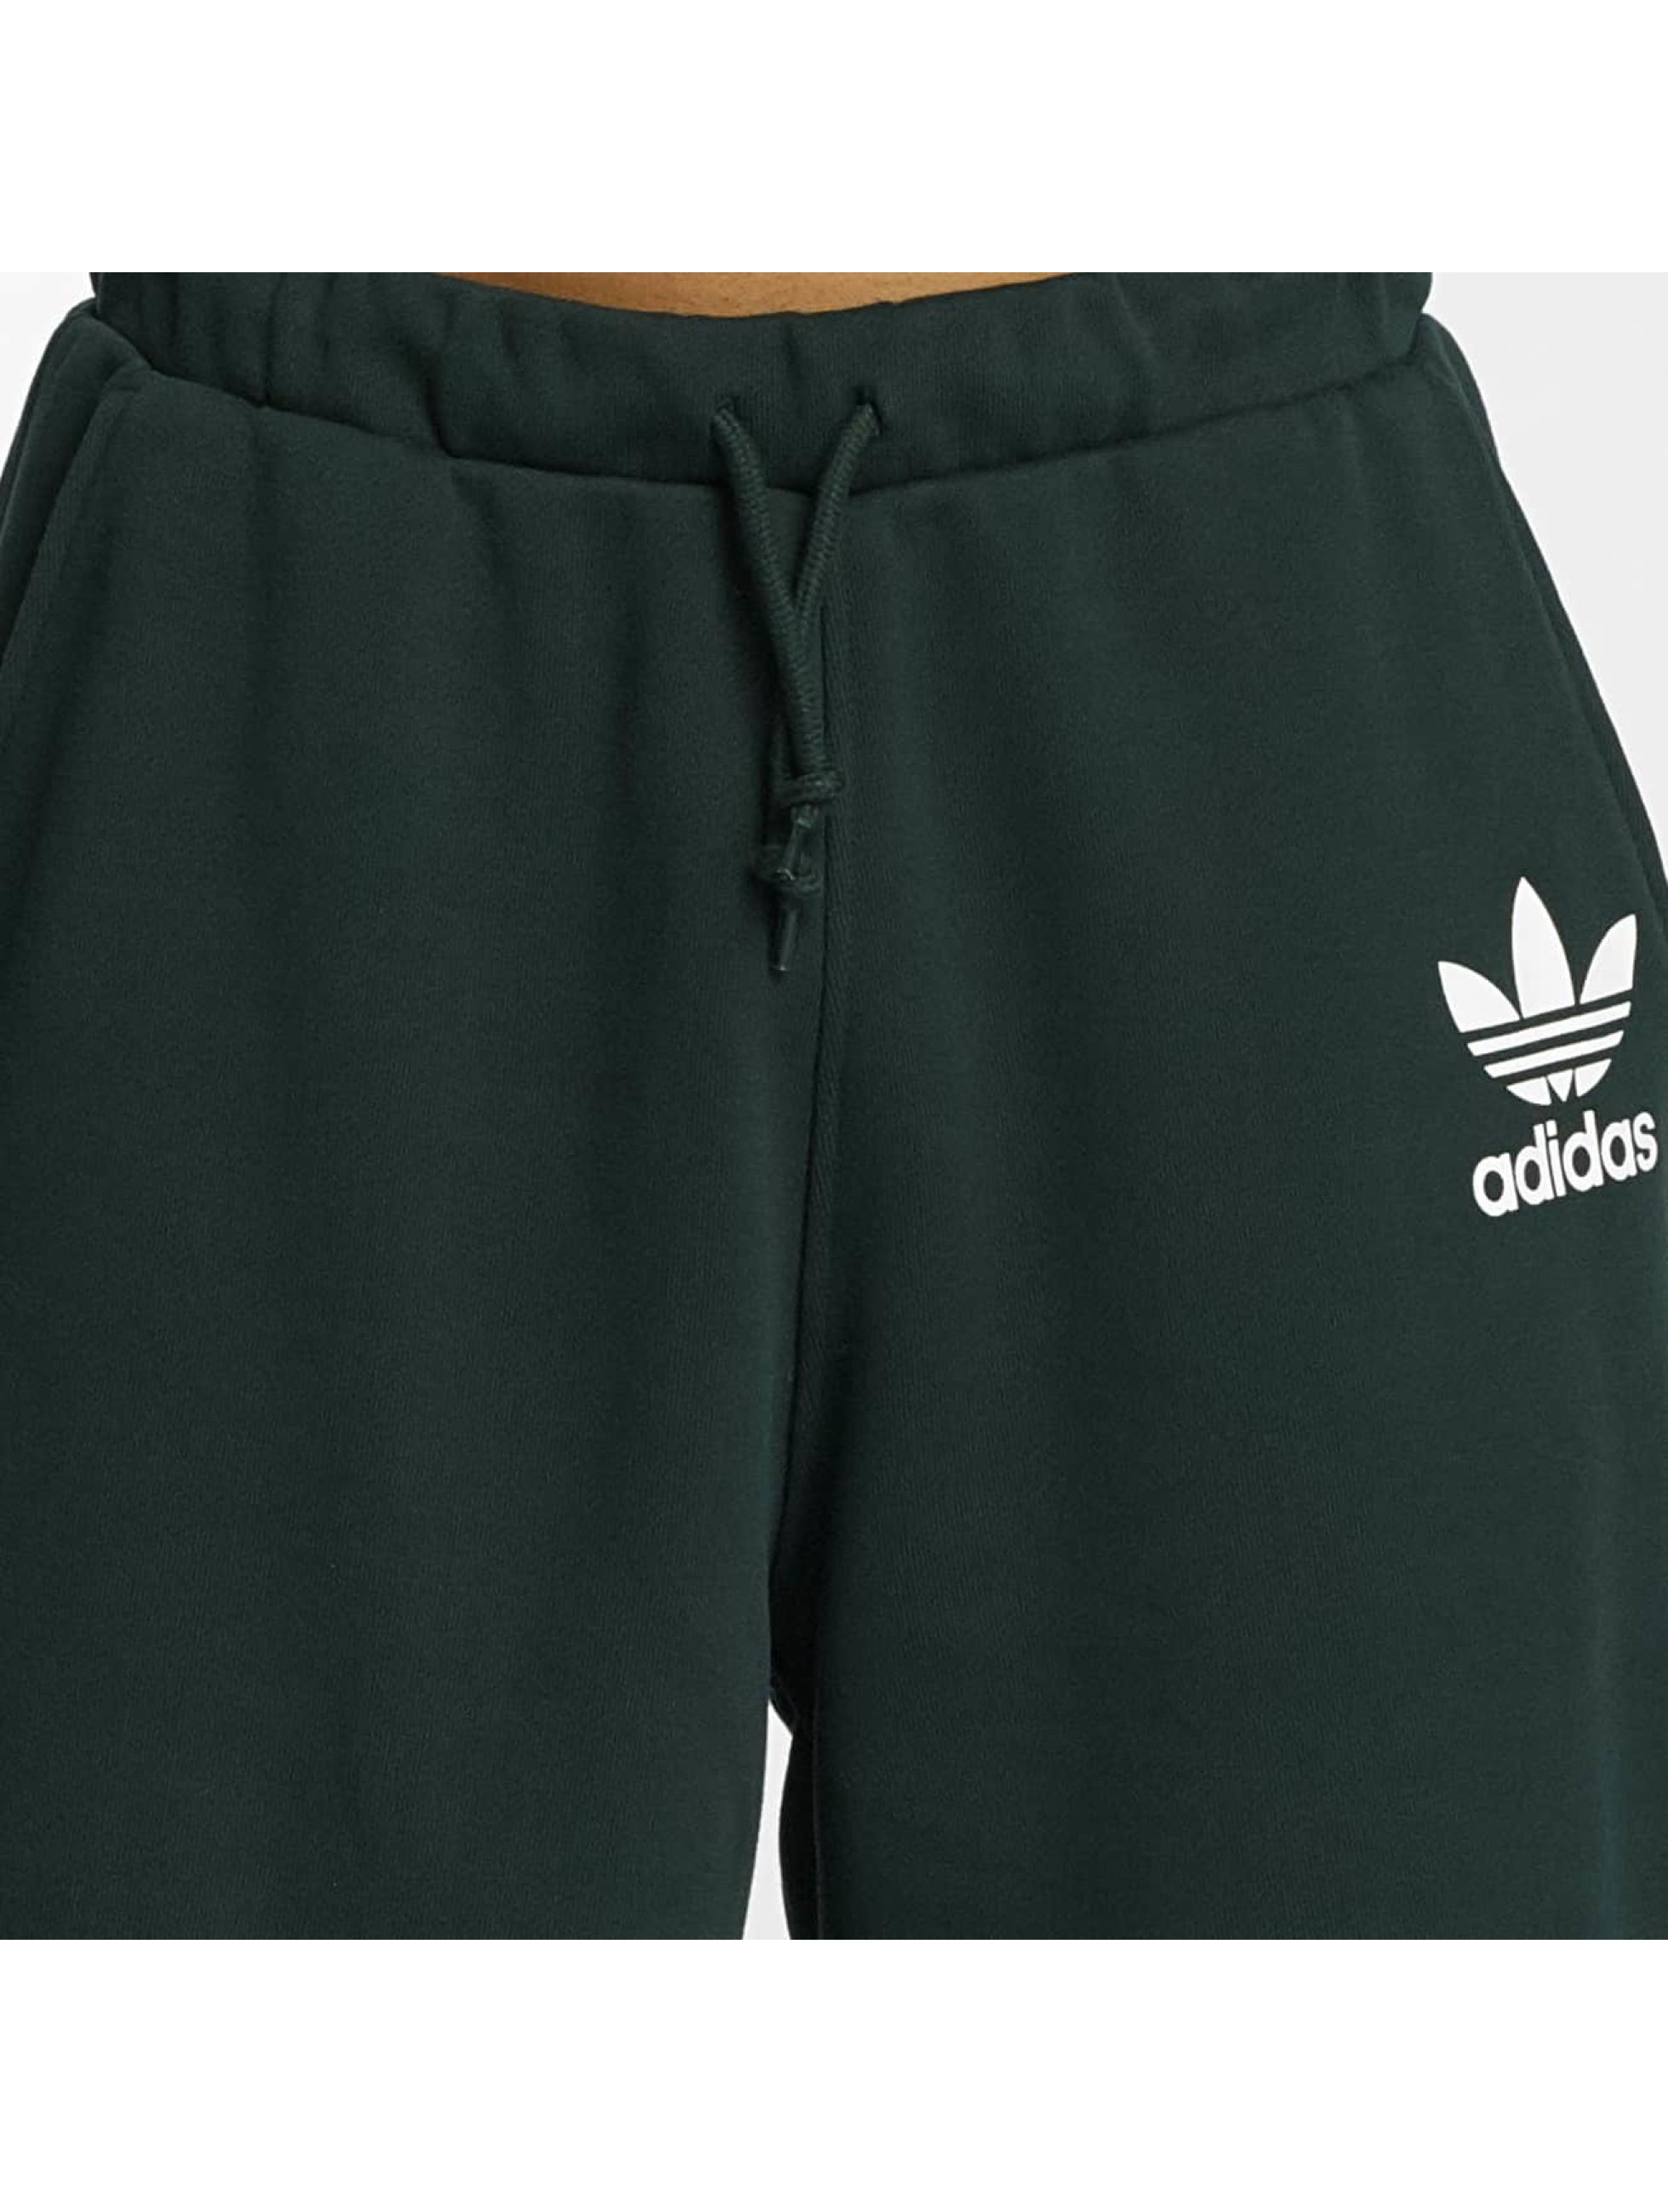 adidas originals Szorty ADC F zielony